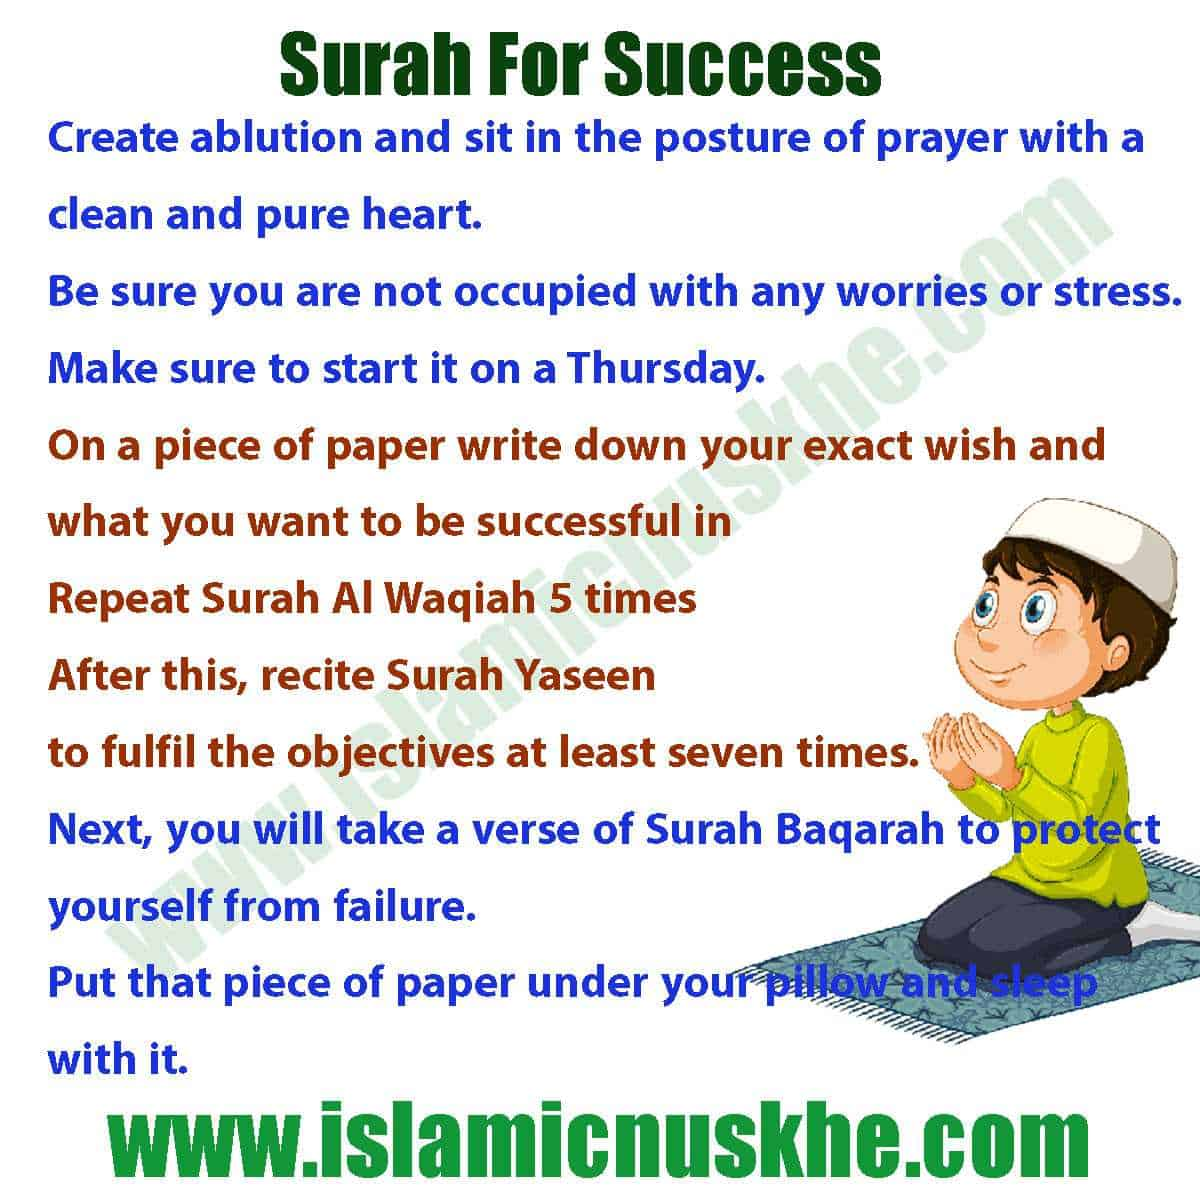 How To Perform Surah For Success Step by Step -